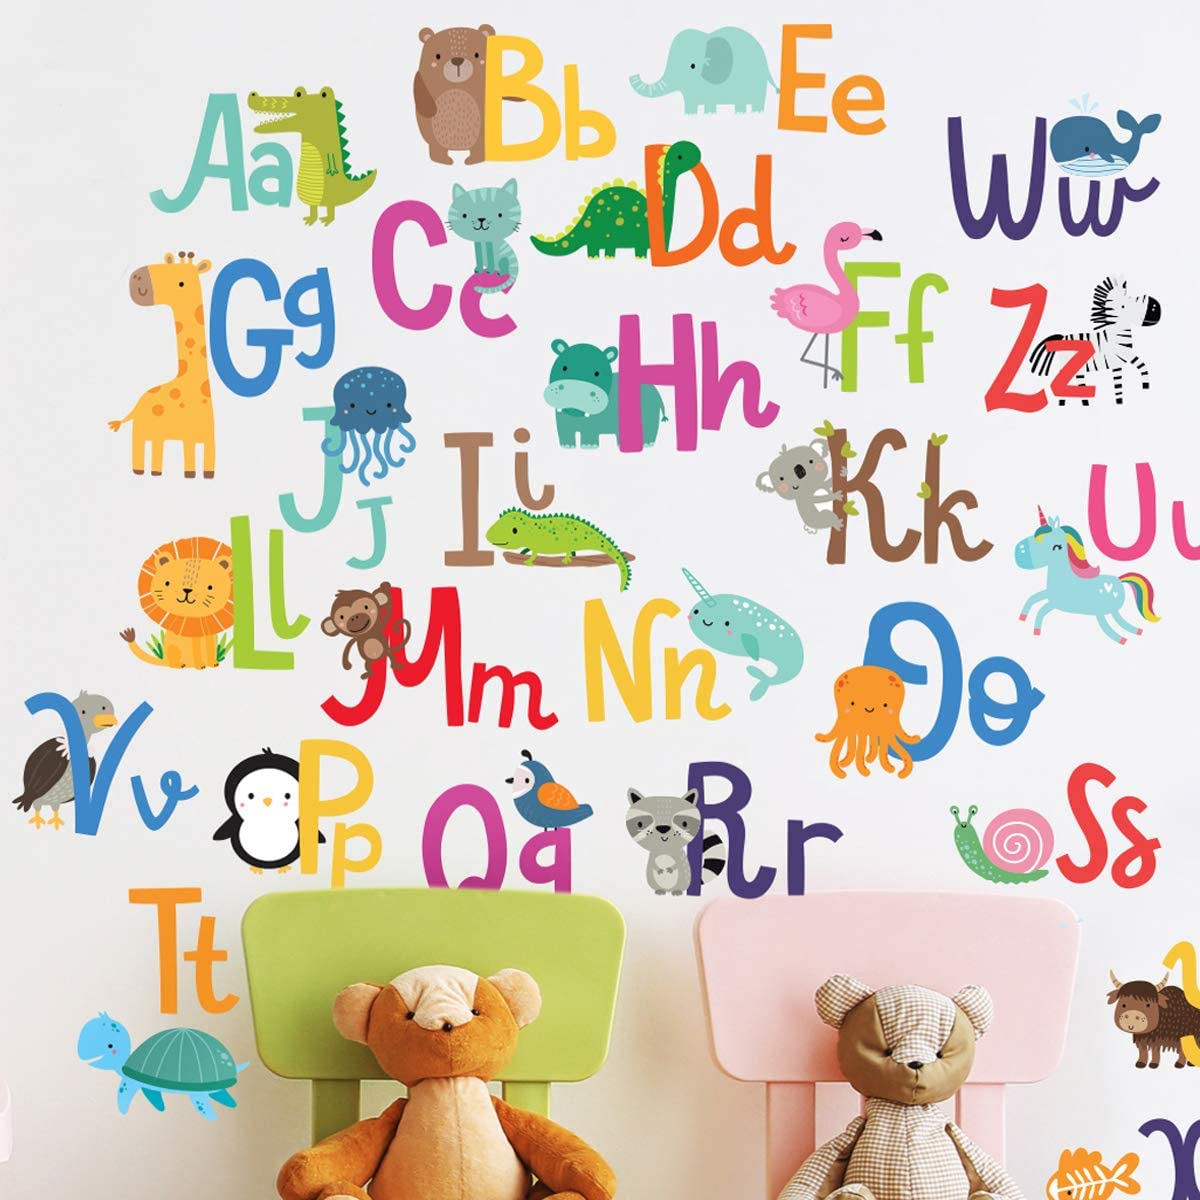 Alphabet Wall Decals for Kids Rooms - ABC Toddler Boy and Girl Playroom Décor Animal Stickers with Free Gift!